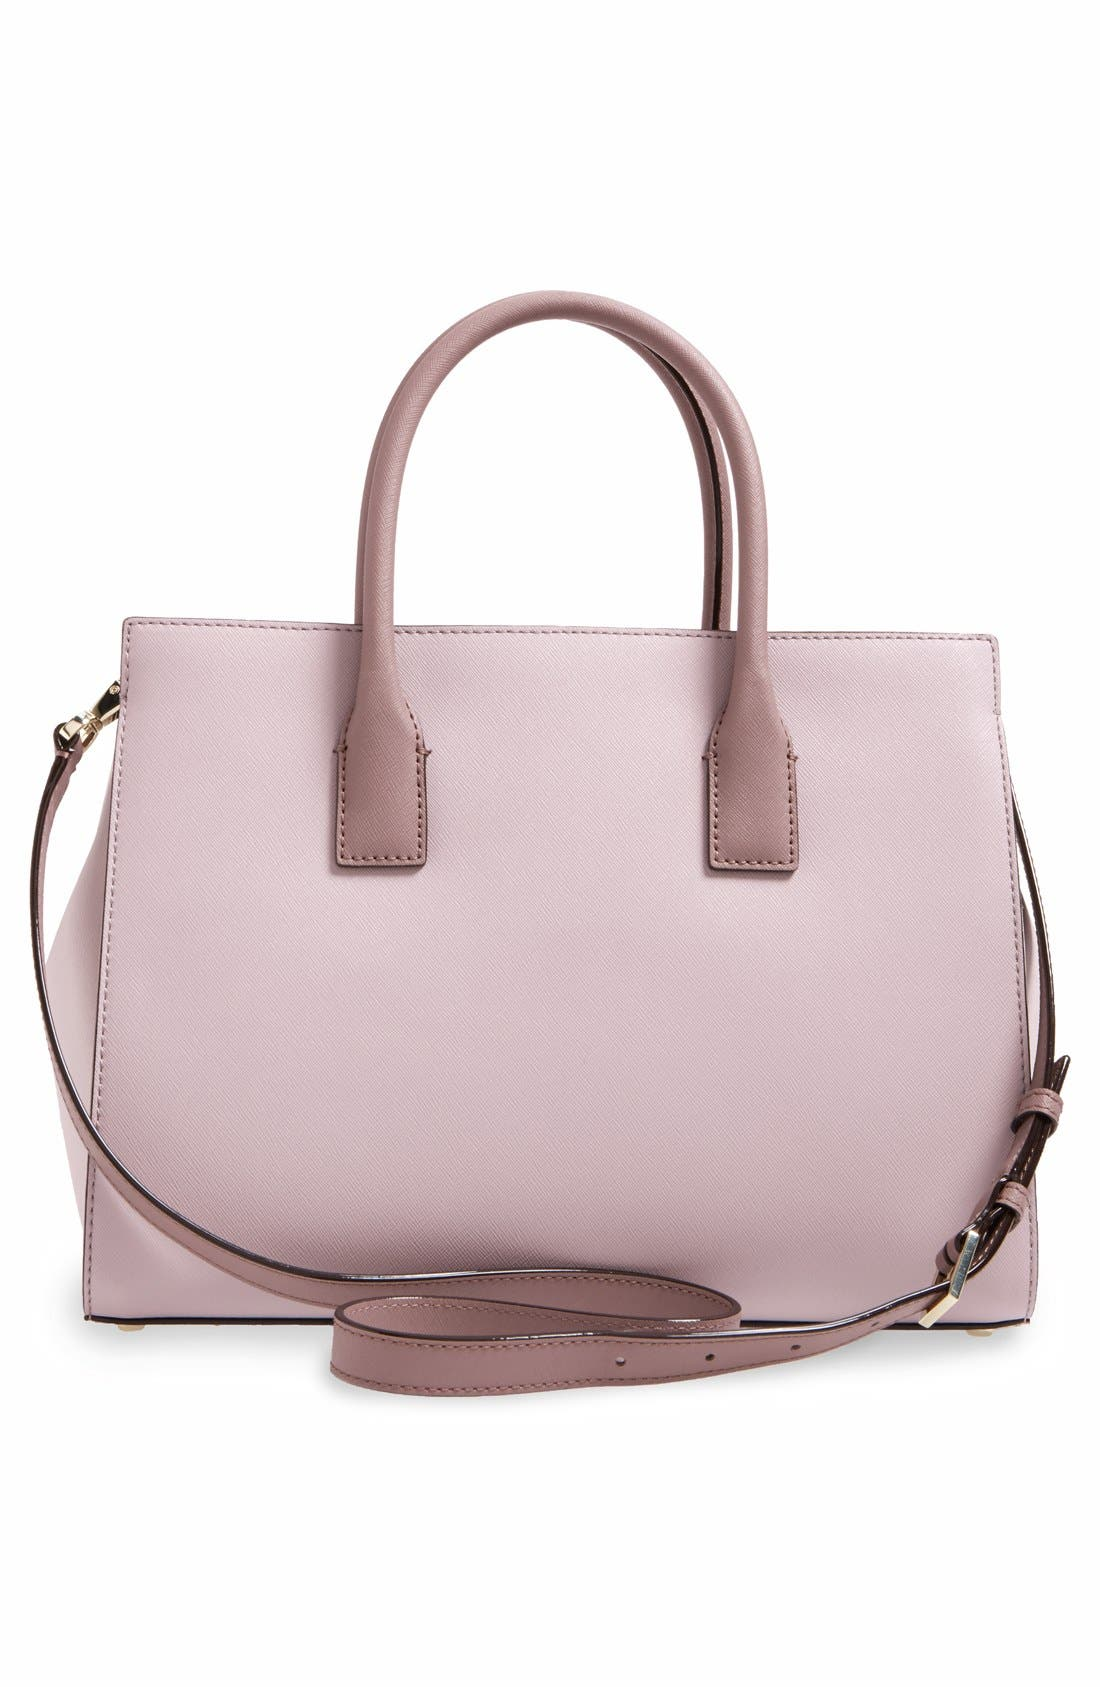 cameron street - candace leather satchel,                             Alternate thumbnail 71, color,